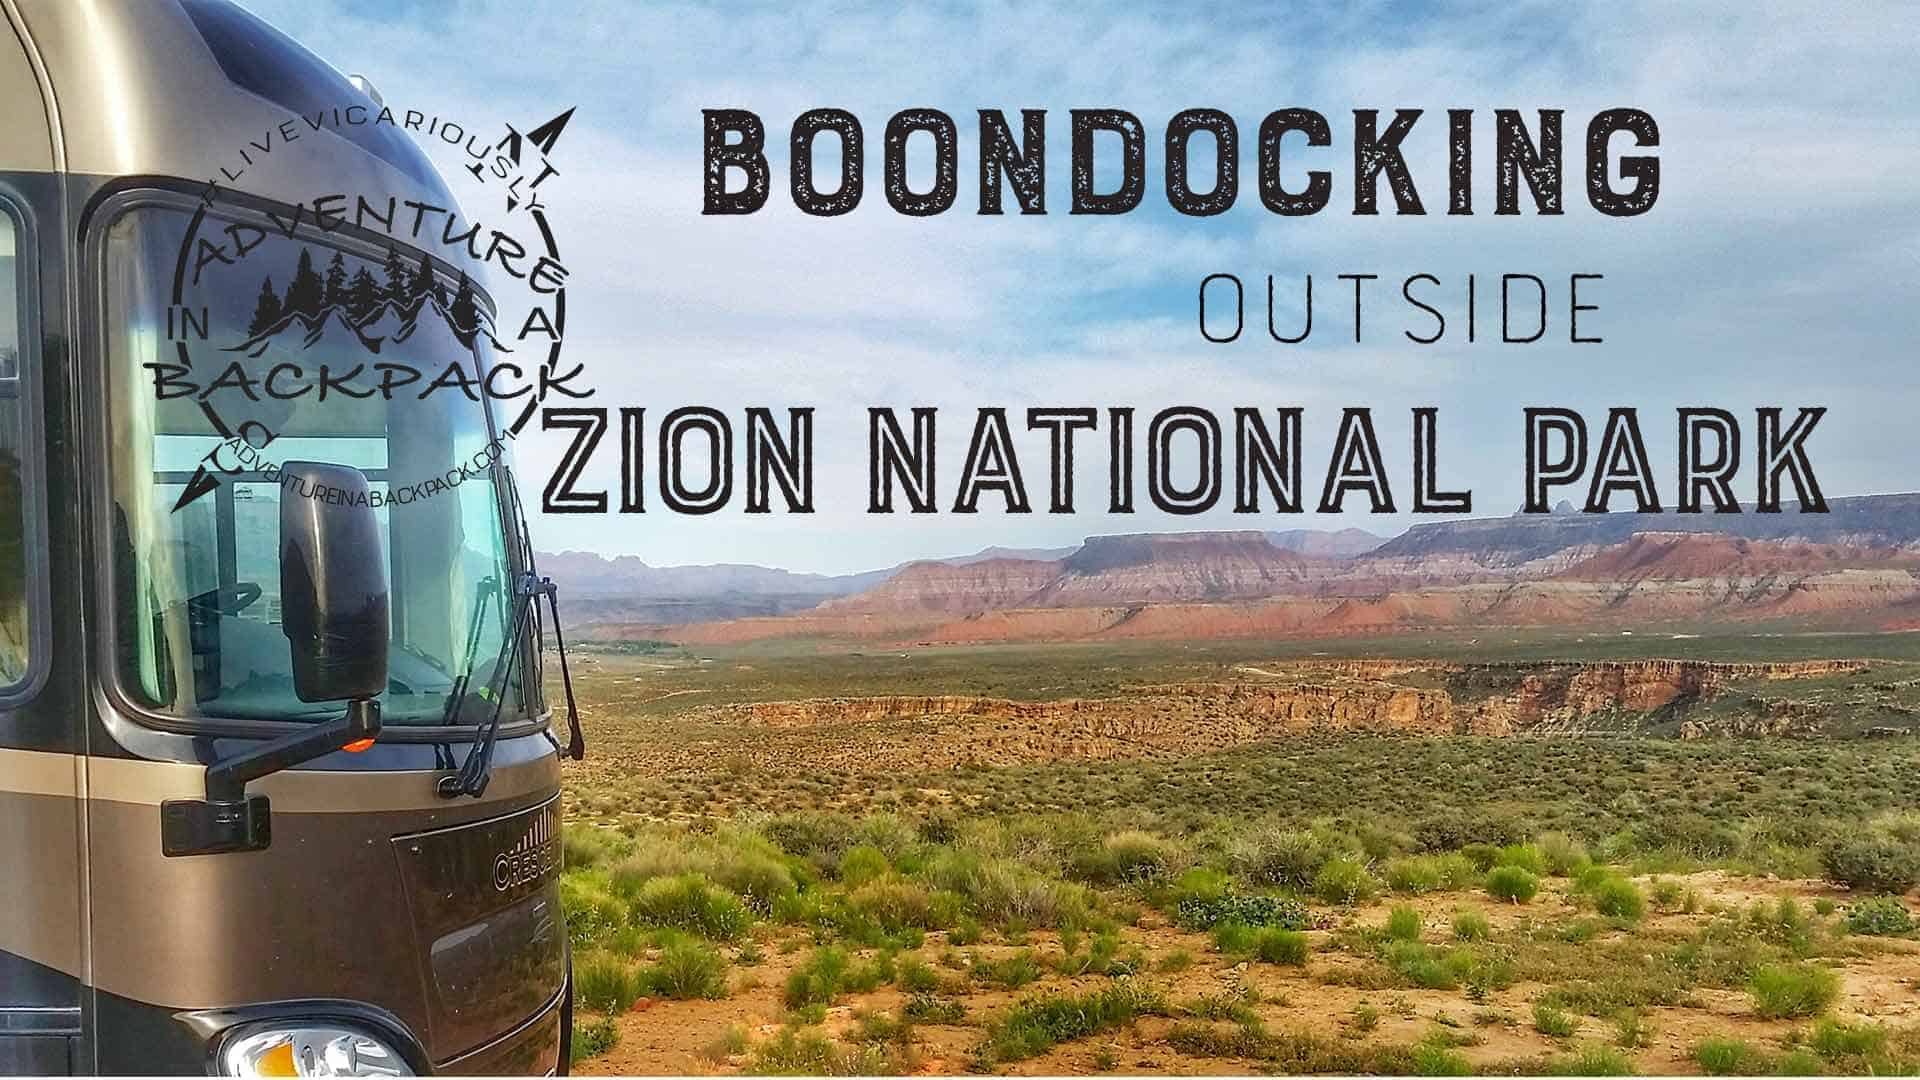 Boondocking Near Zion National Park